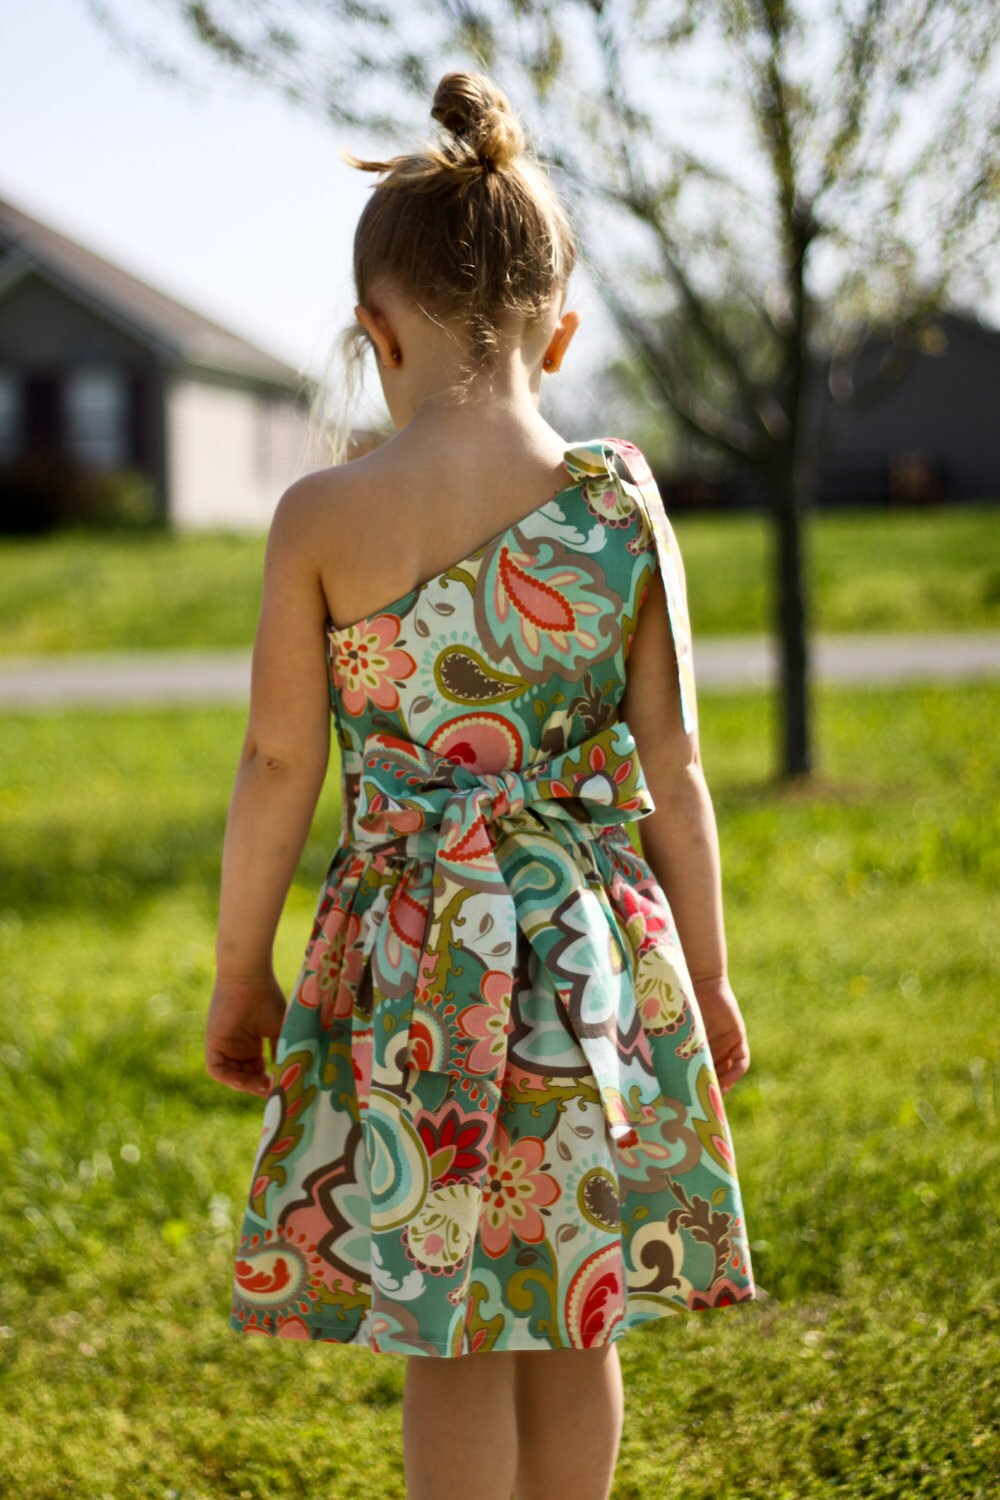 Little Girl Dress Custom Boutique, Ruffled One Shoulder Dress --Paisley, Floral Teal Girl's Dress Size 4 5 6